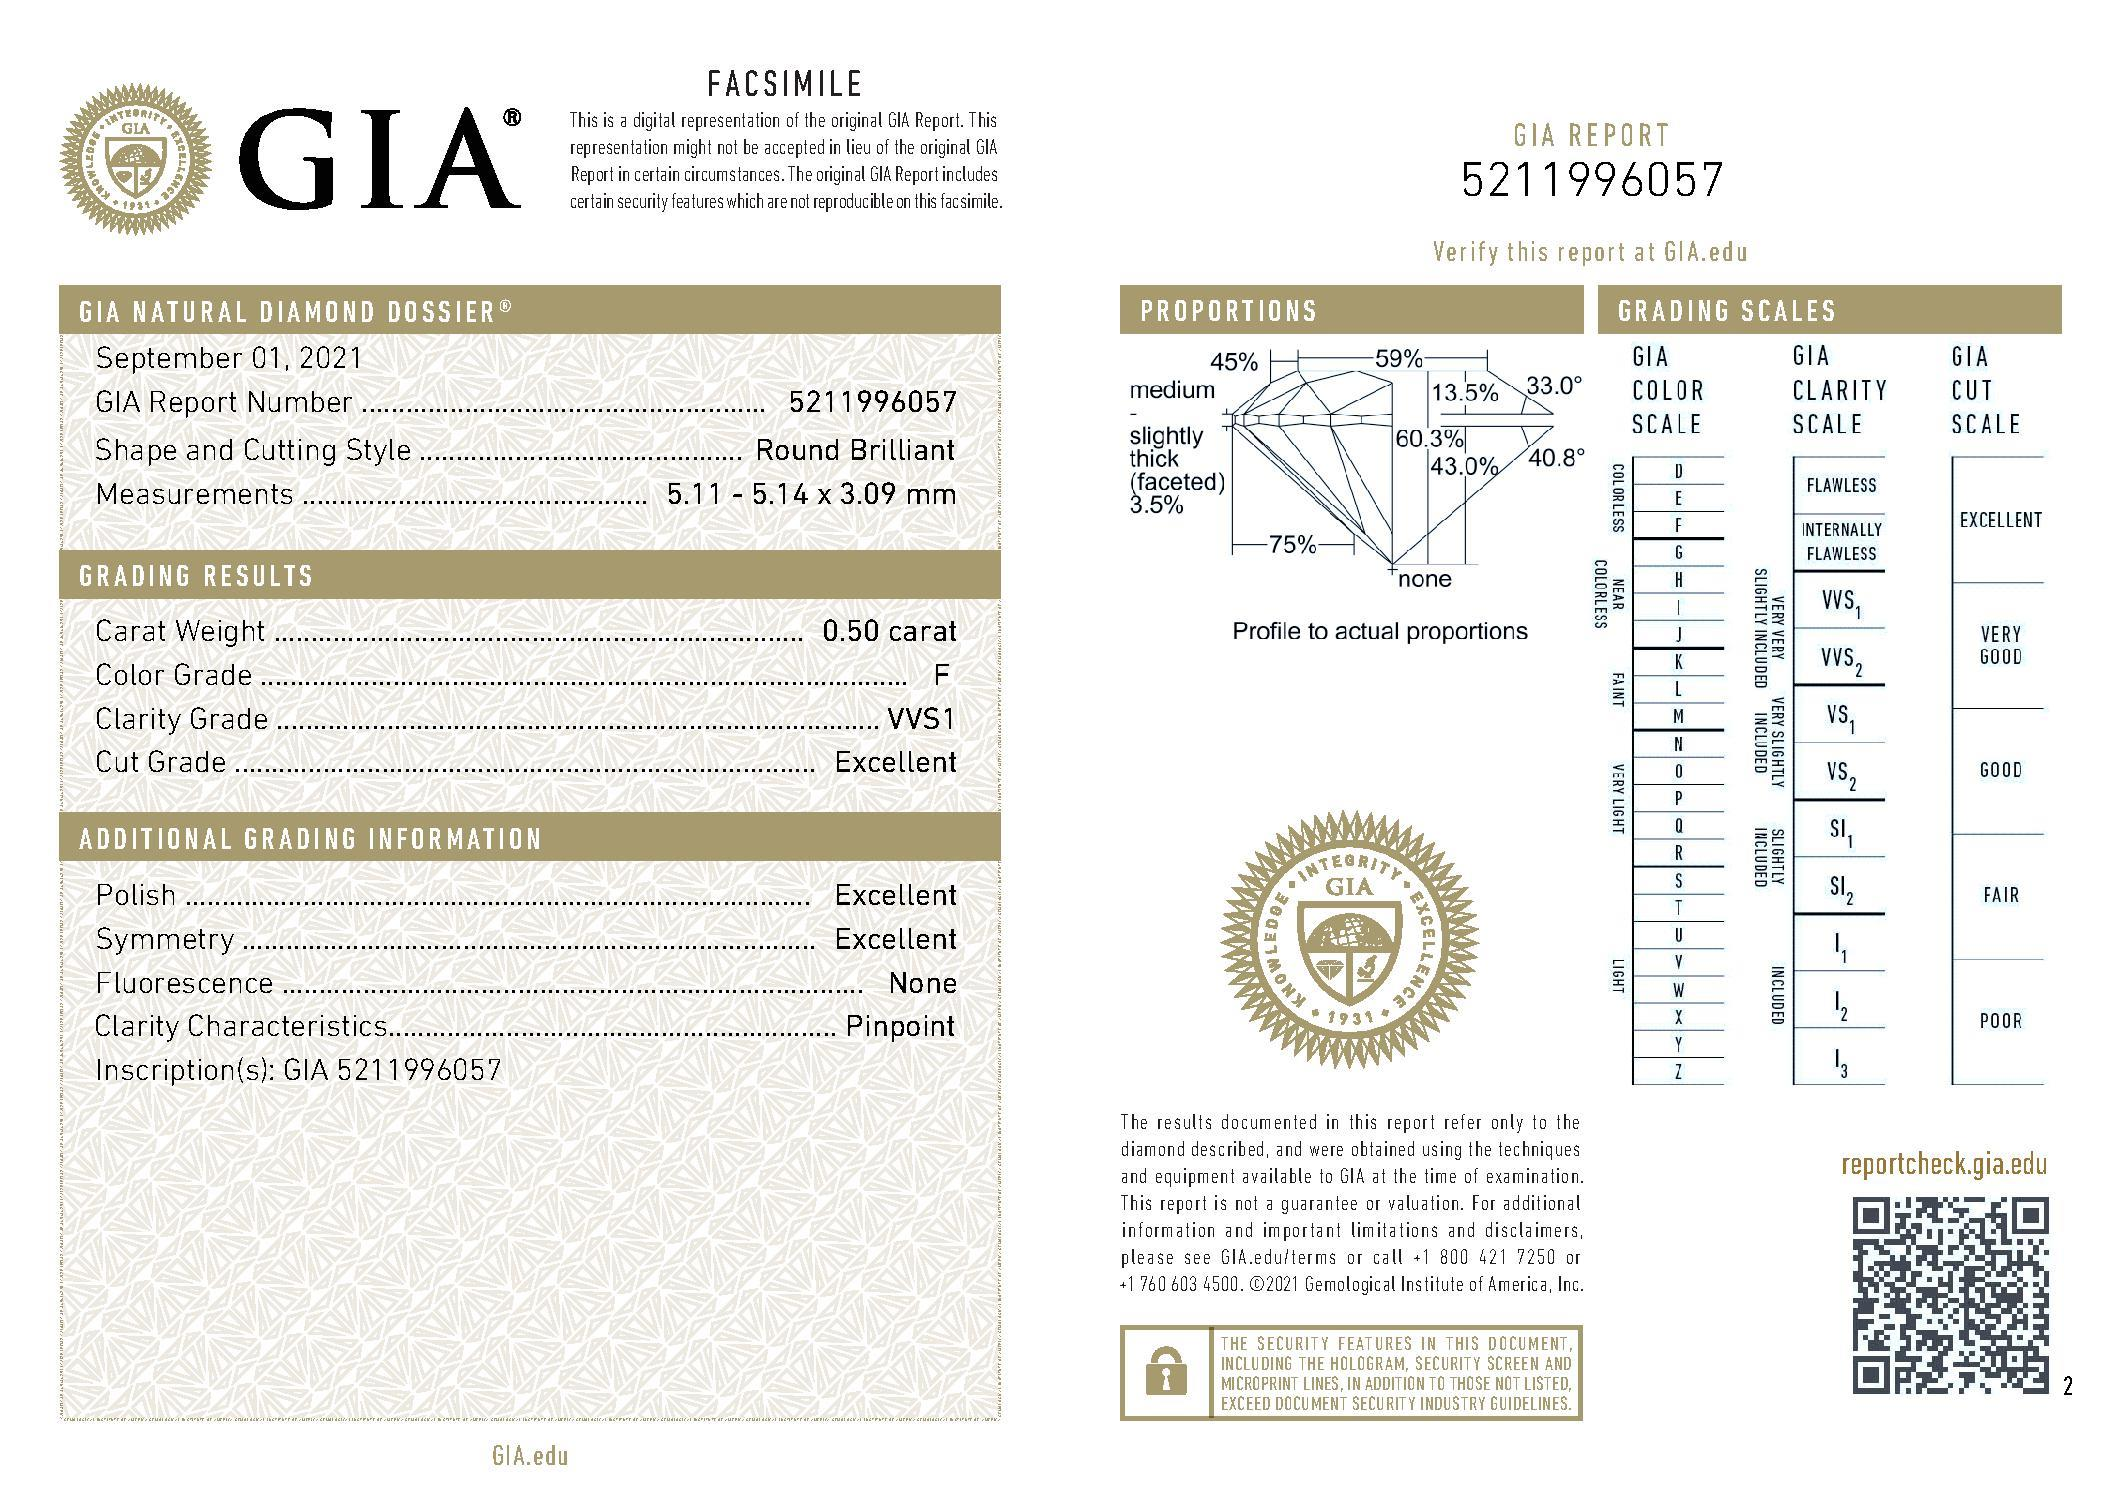 This is a 0.50 carat round shape, F color, VVS1 clarity natural diamond accompanied by a GIA grading report.